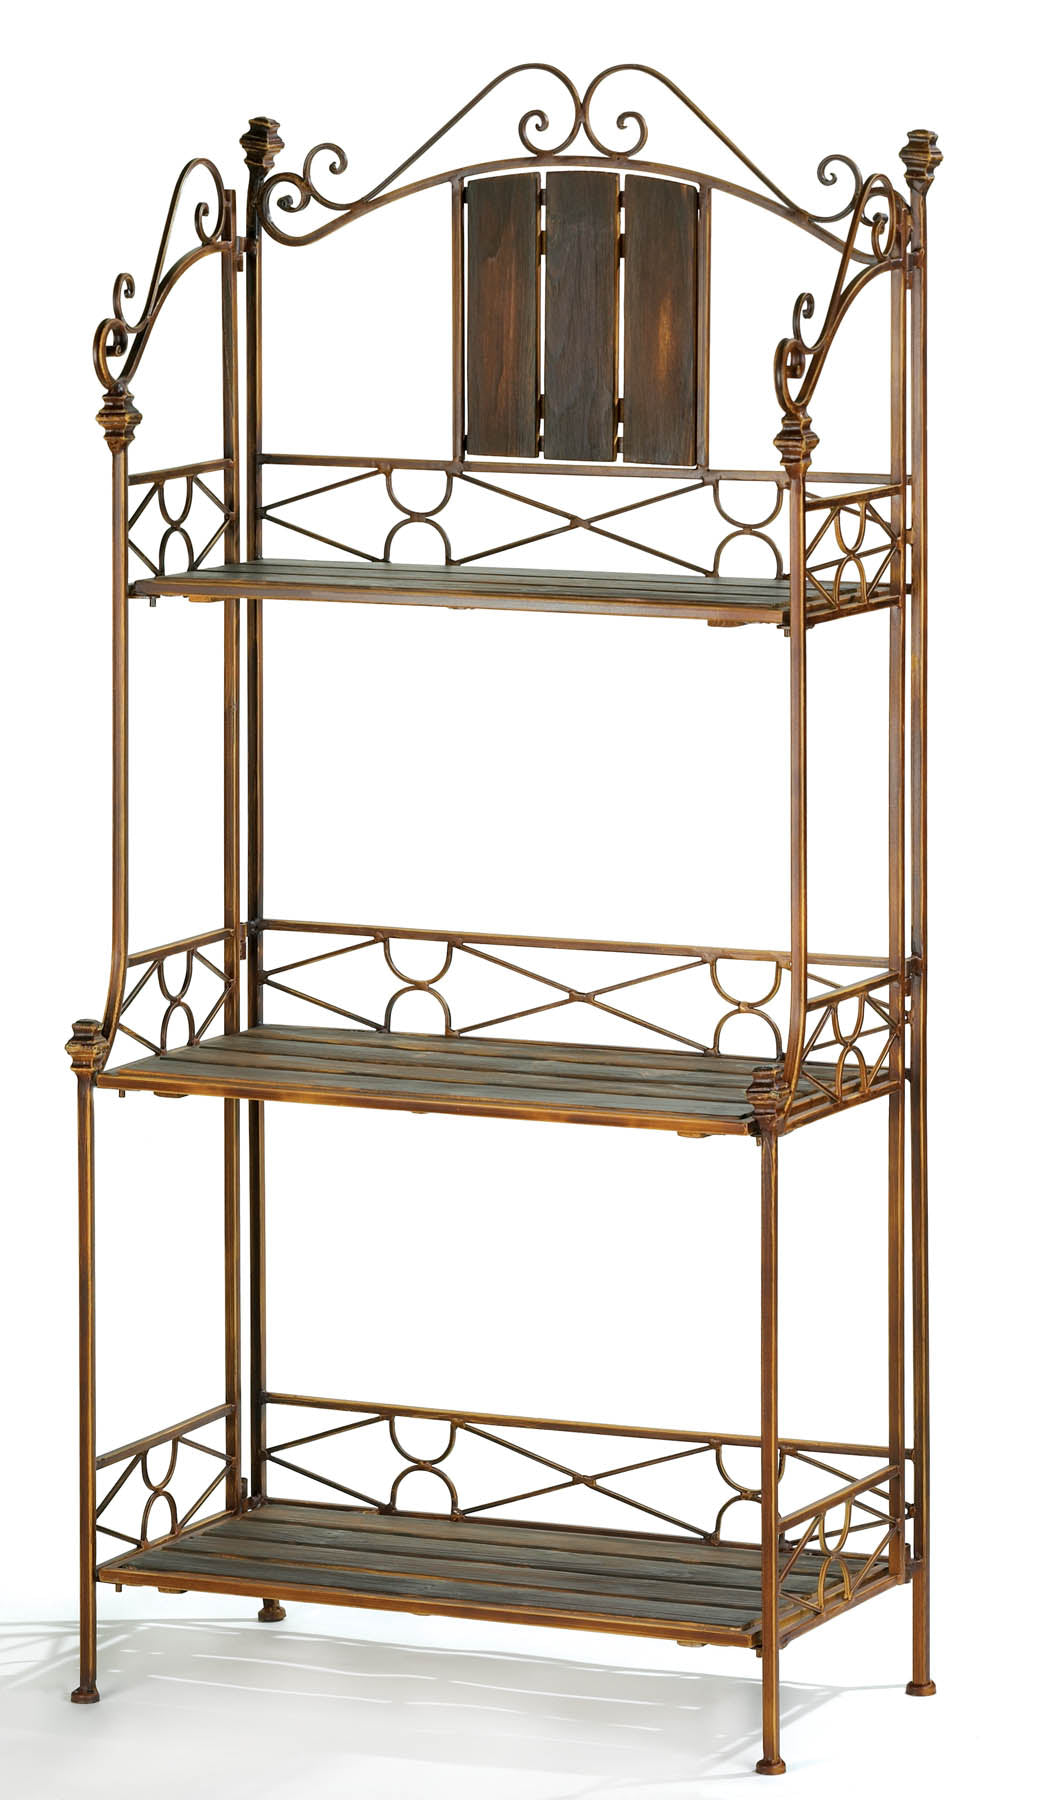 Accent Plus Rustic Baker's Rack Shelf - 12516